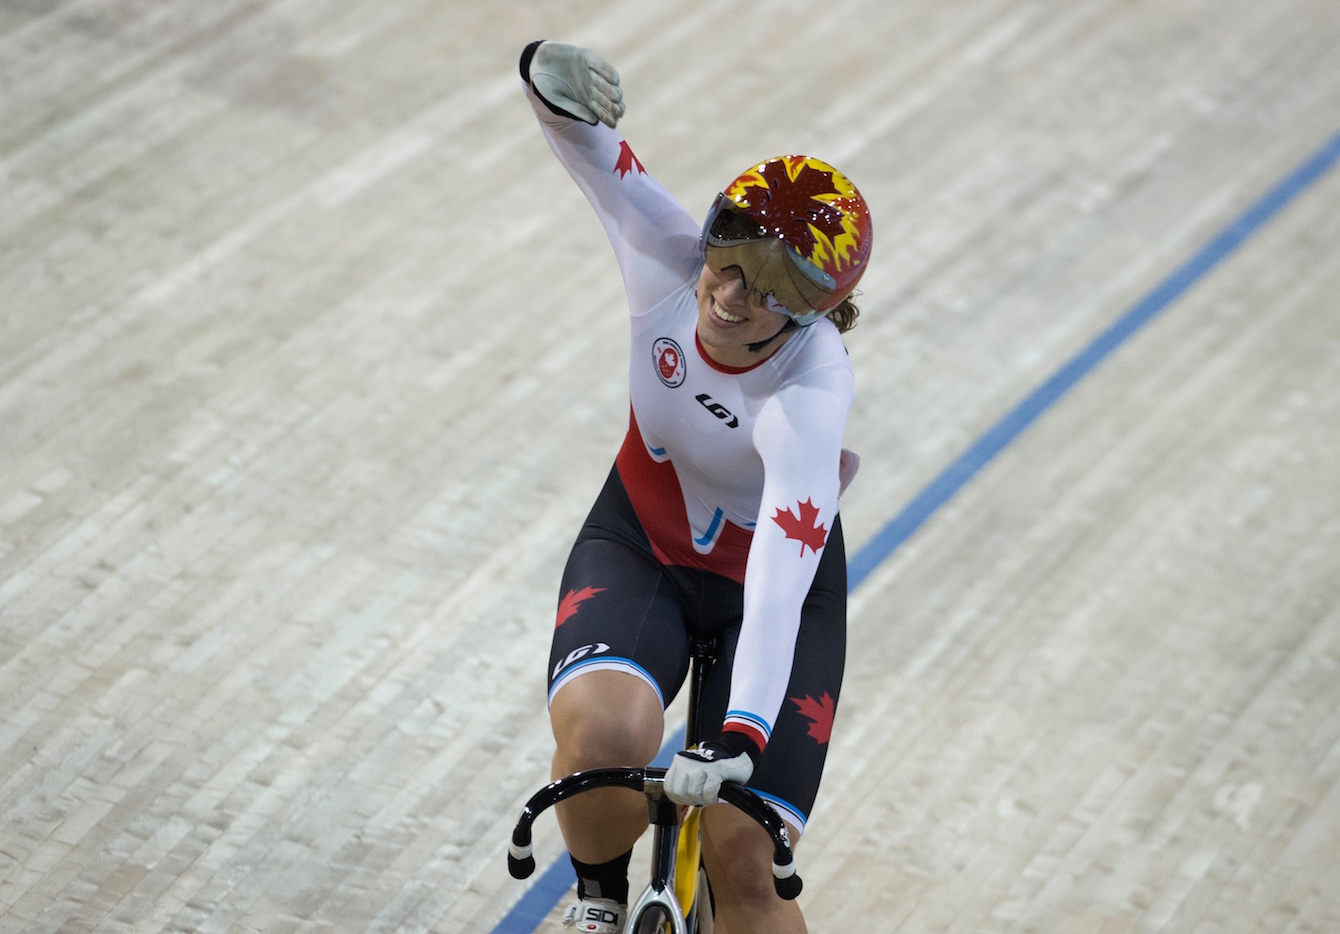 Monique Sullivan wins gold in the Women's Keirin at the Pan American Games in Toronto, July 17, 2015. COC Photo by Jason Ransom